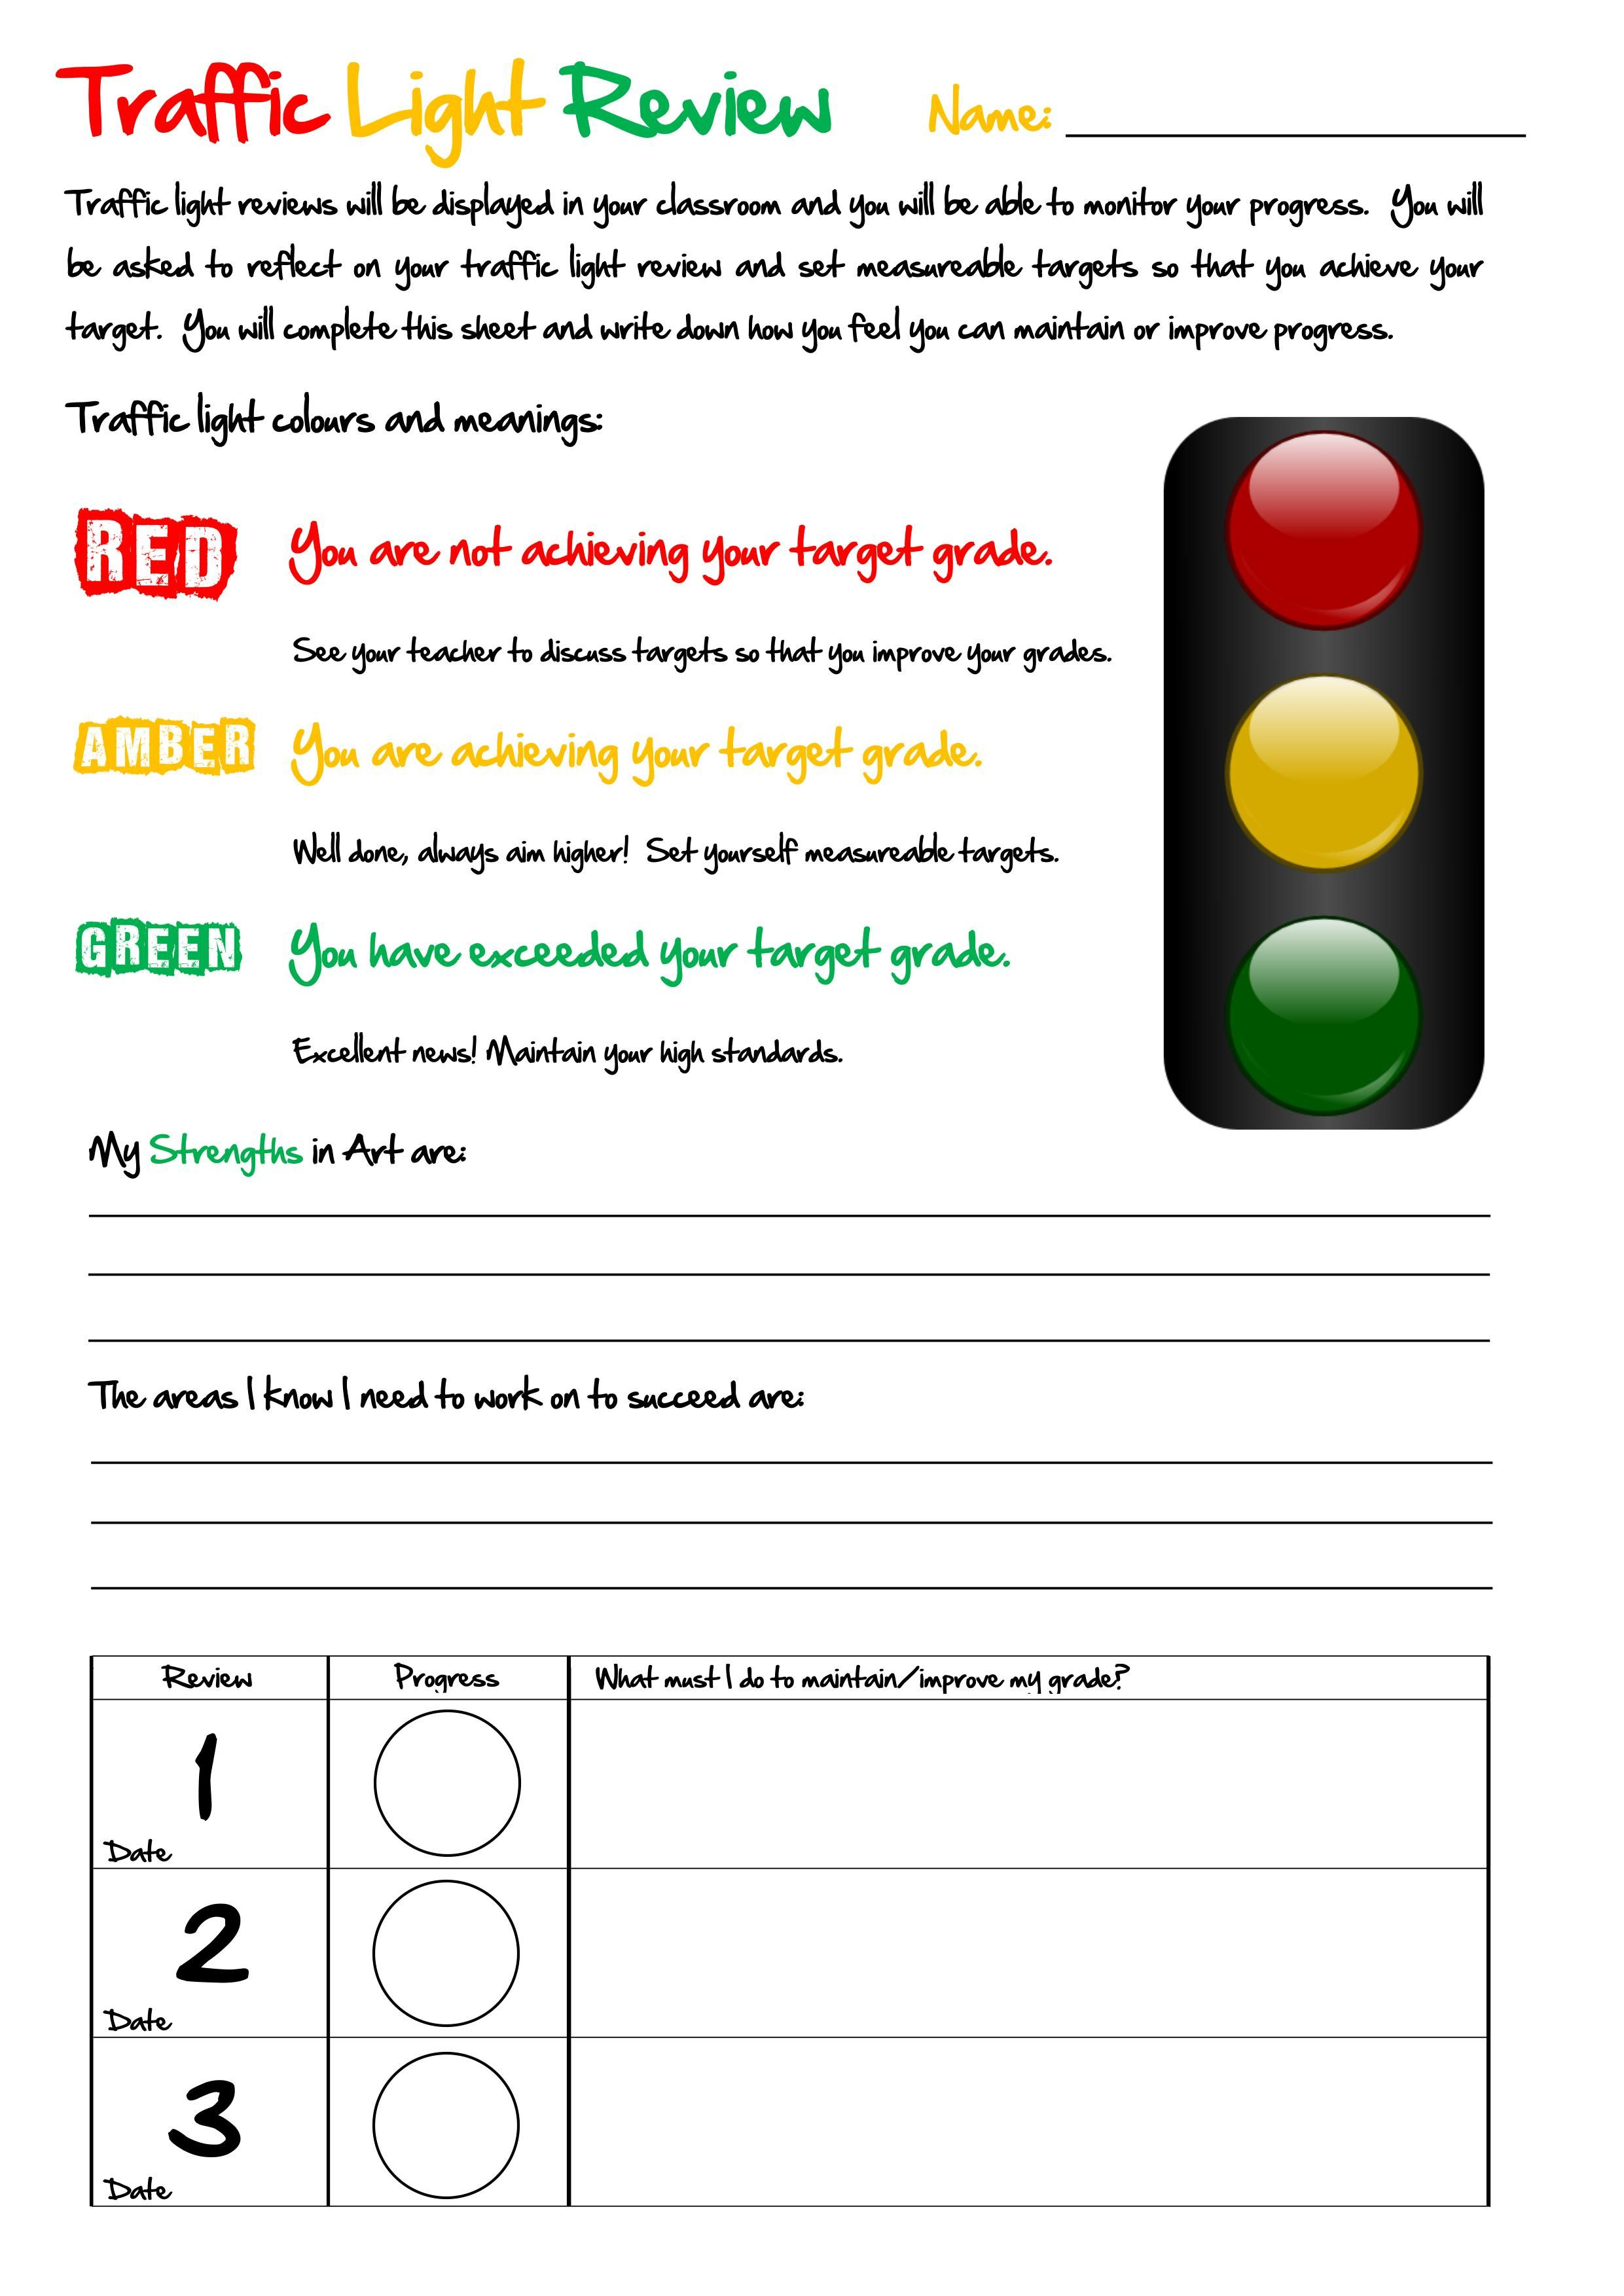 Traffic Light Review Rehashed With Images